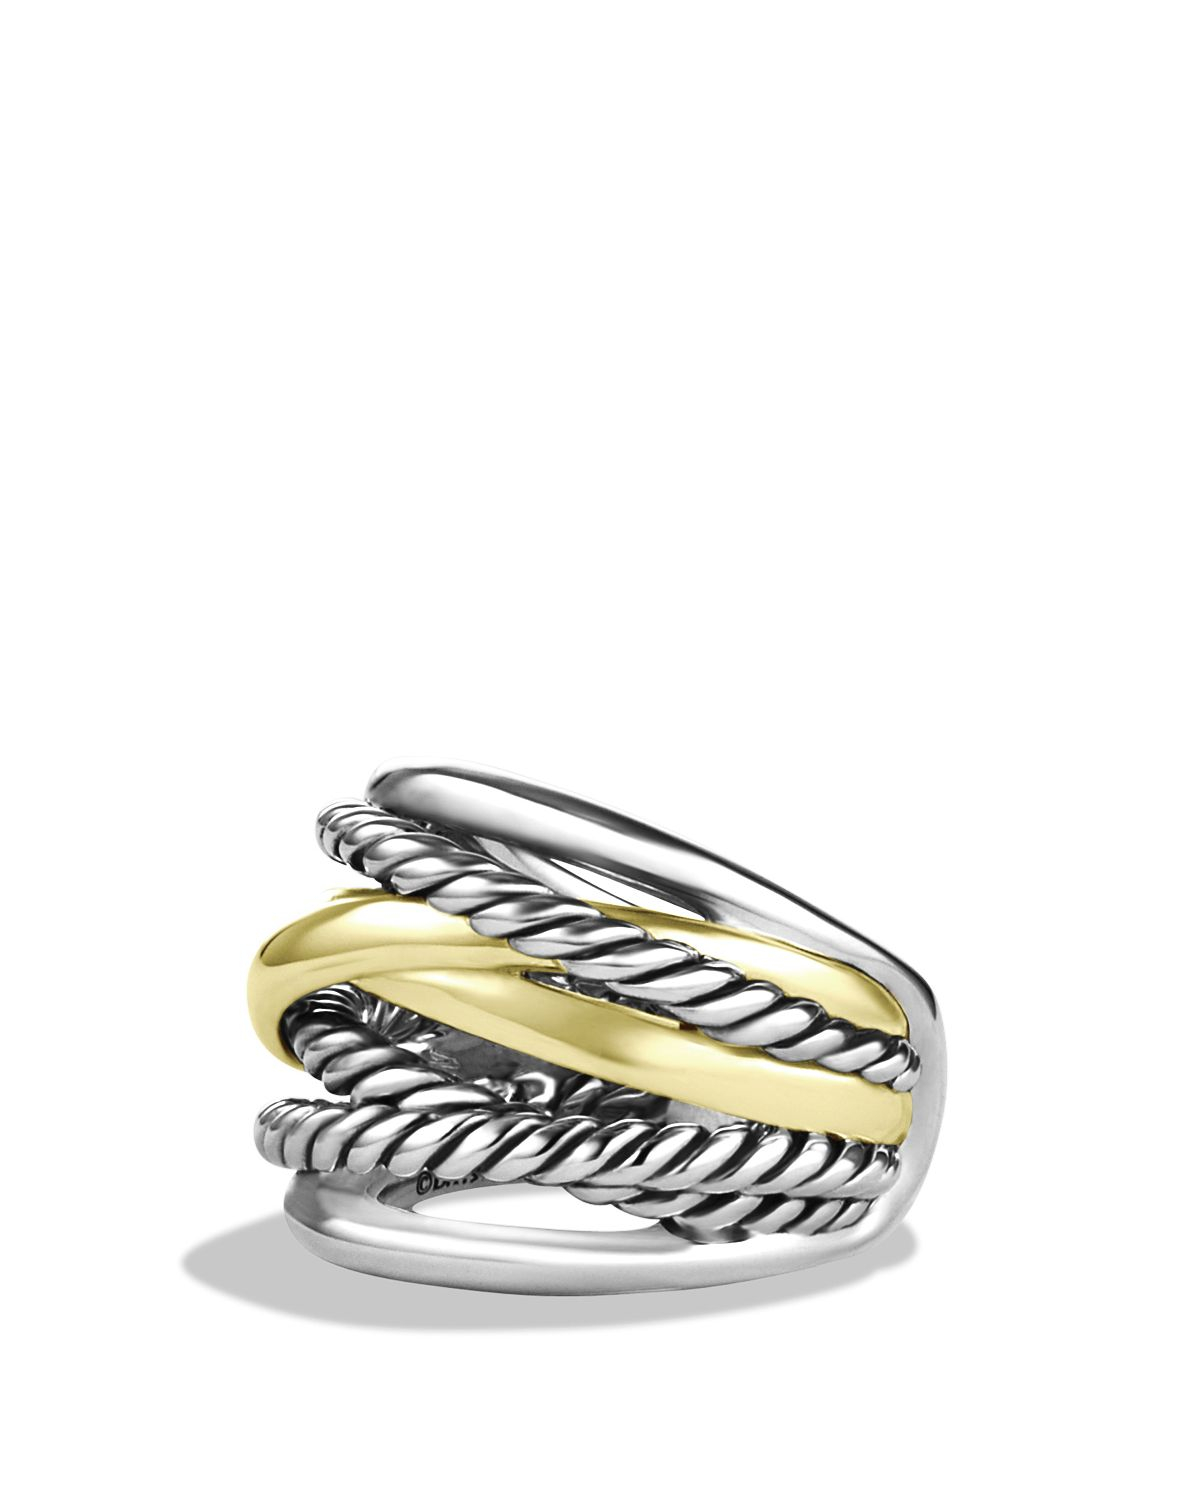 David Yurman Crossover Ring Yellow Gold